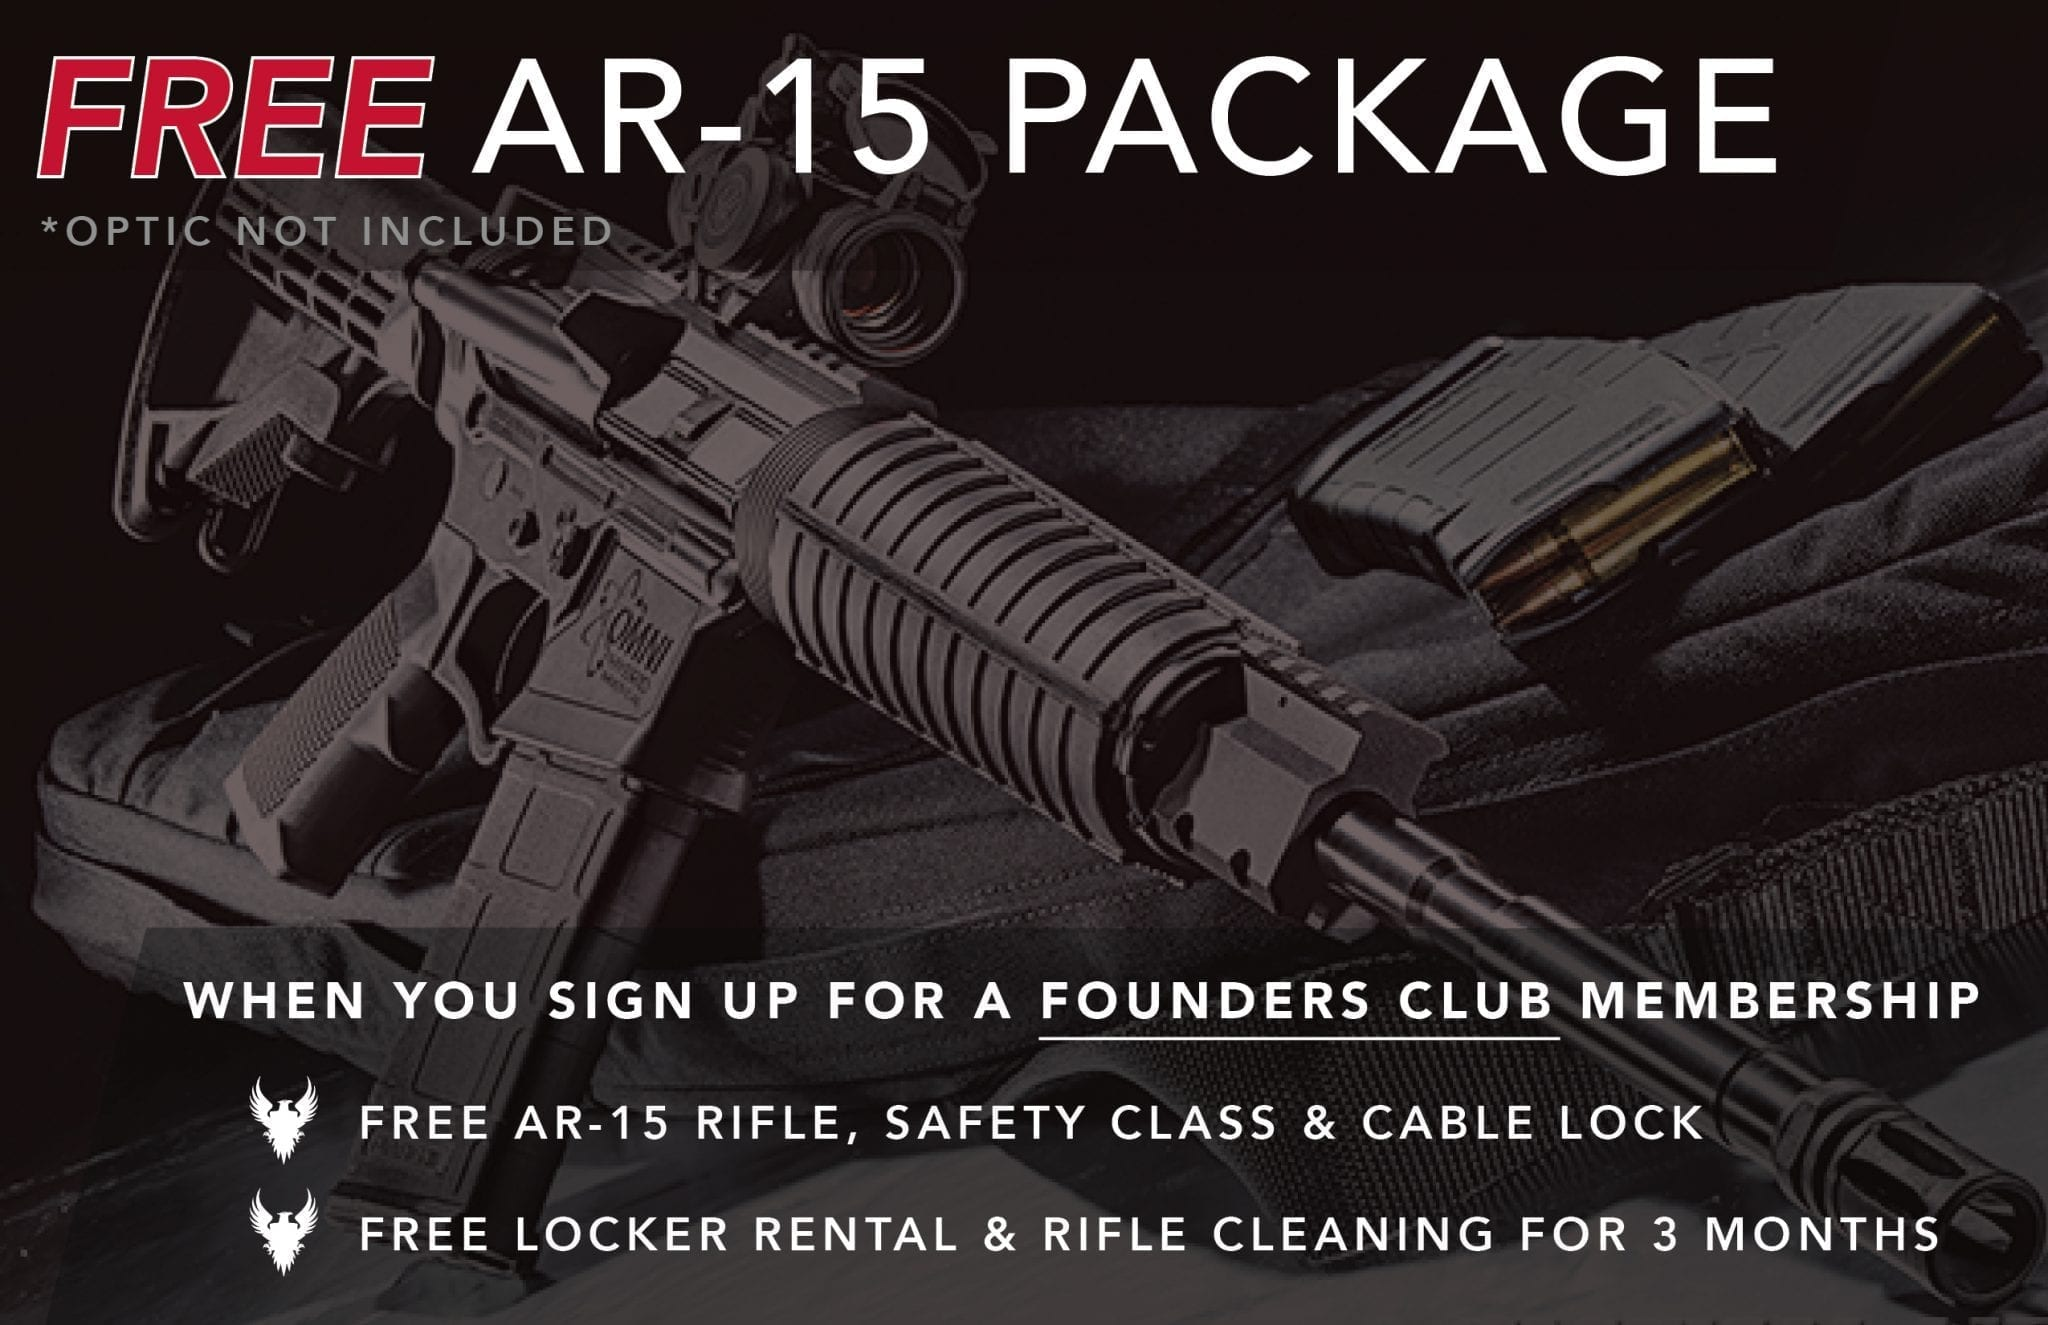 88t_membership-promo-graphic_ar-15-package